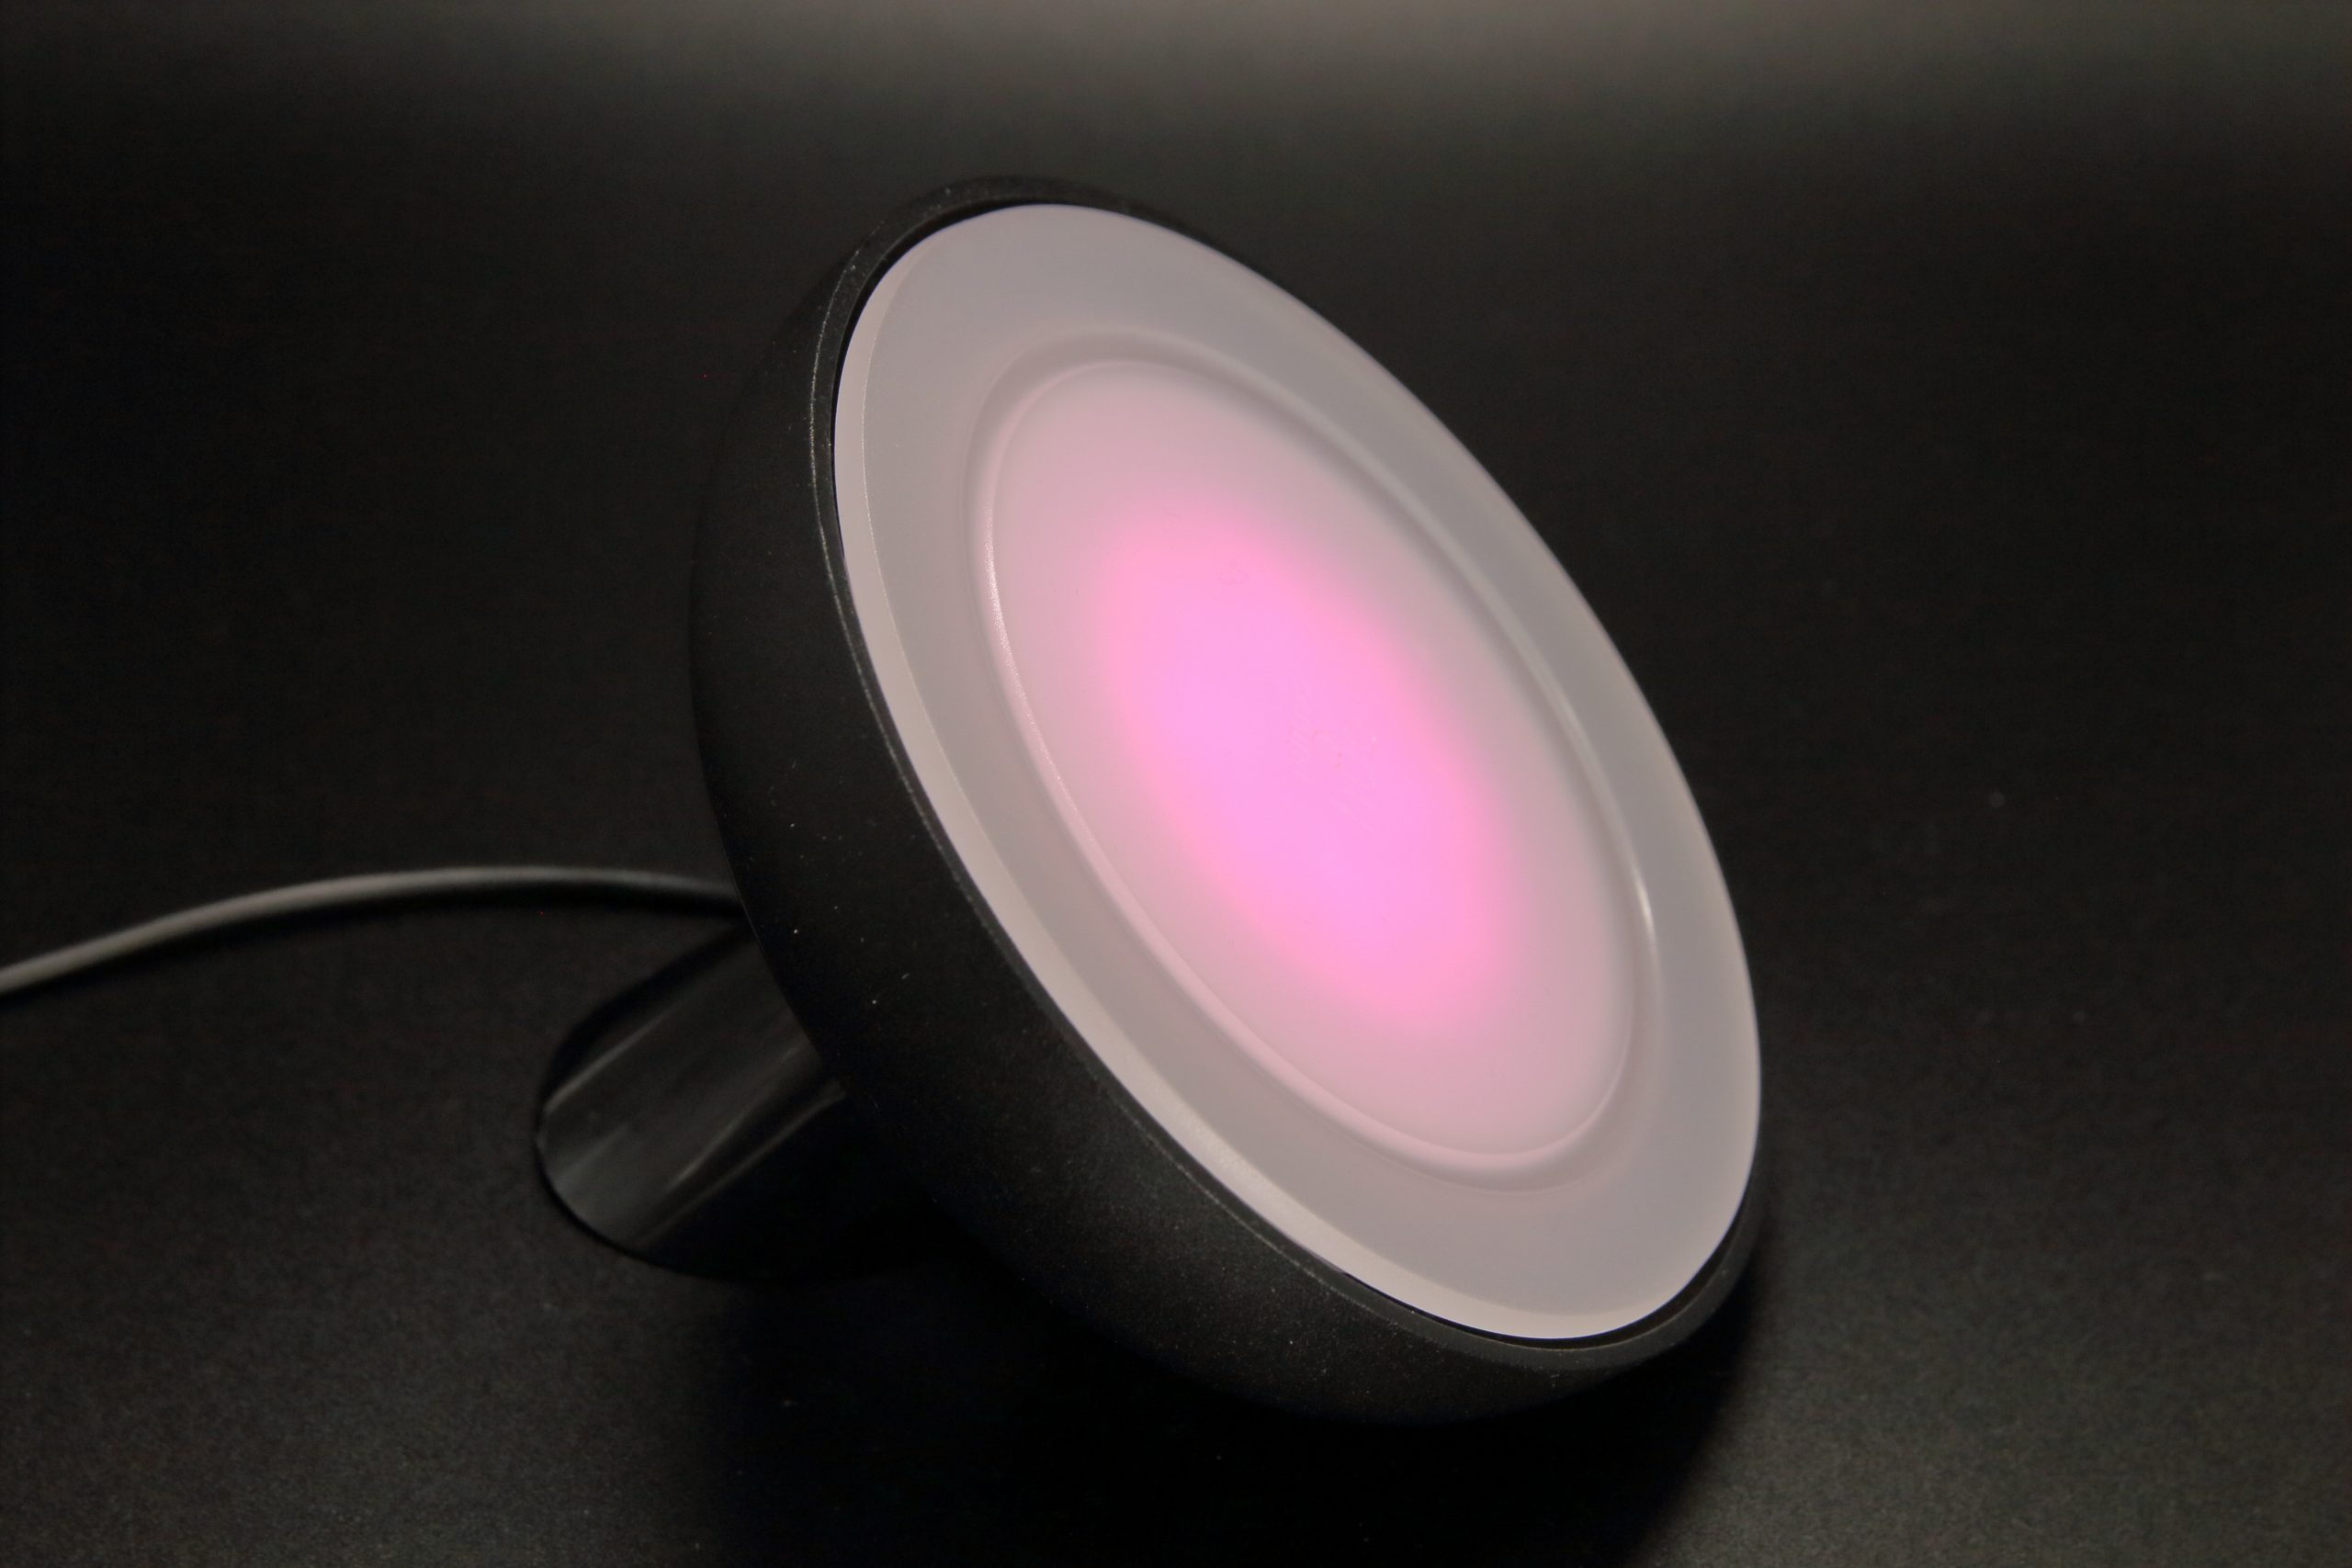 philips hue supported lights and